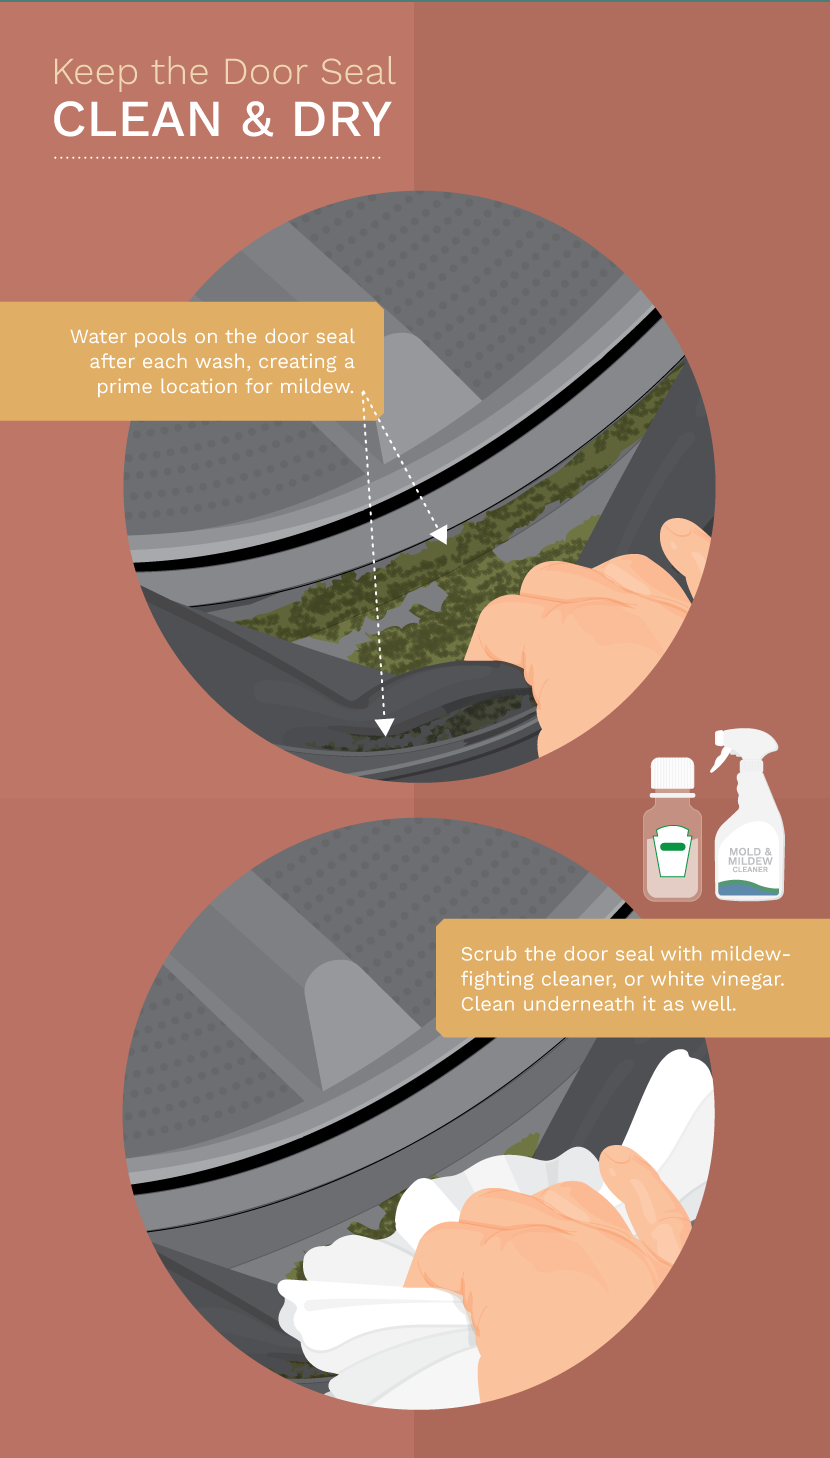 How to Clean Your Washer's Door Deal